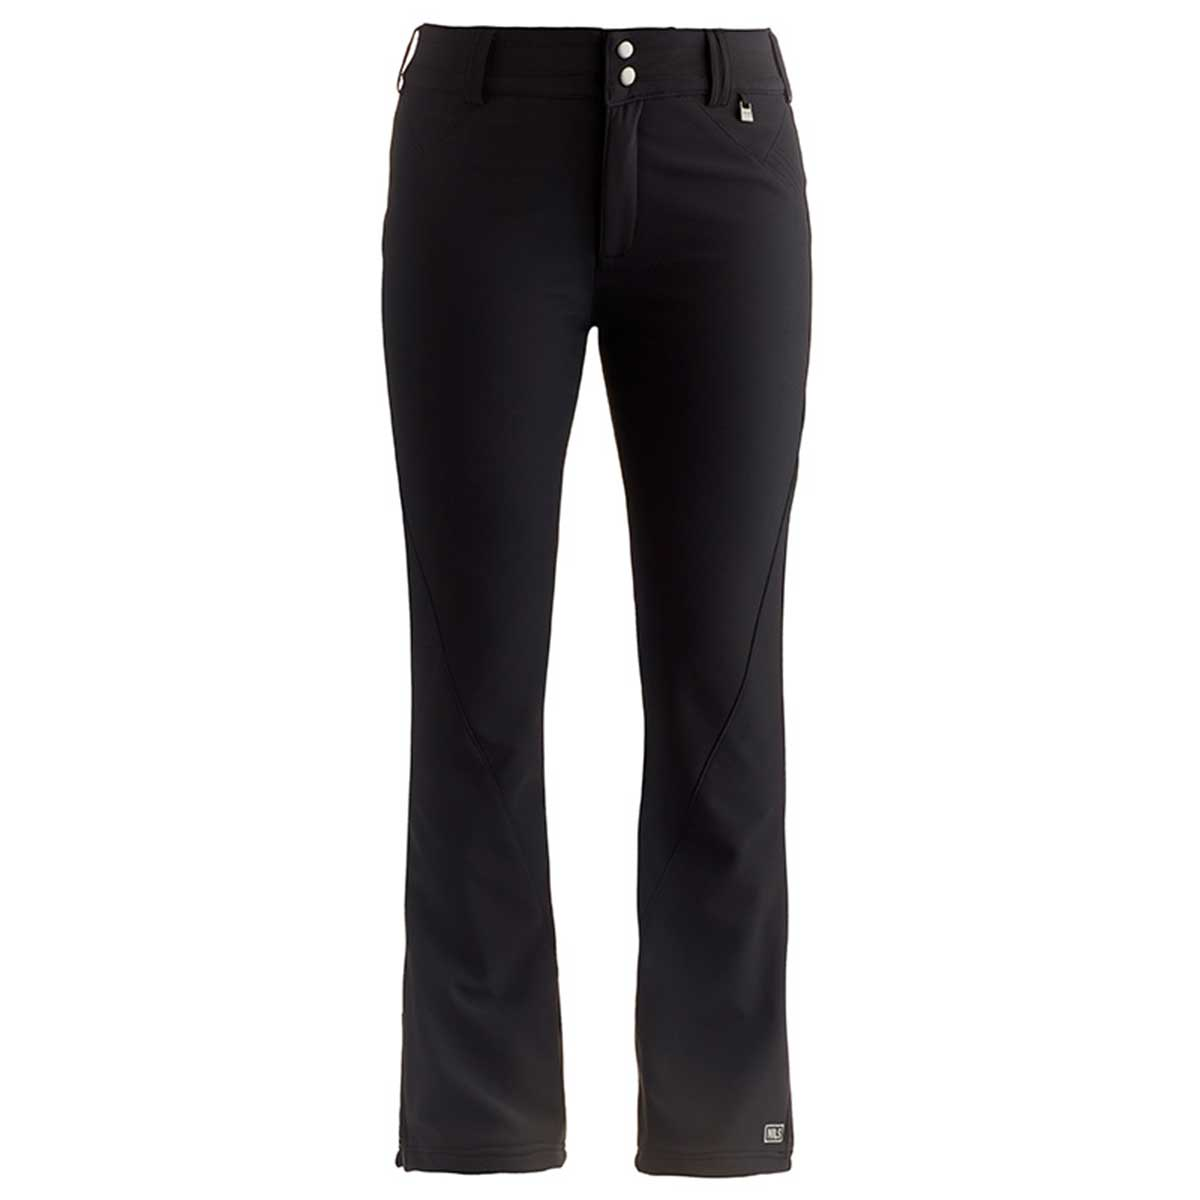 NILS Betty pant in Black